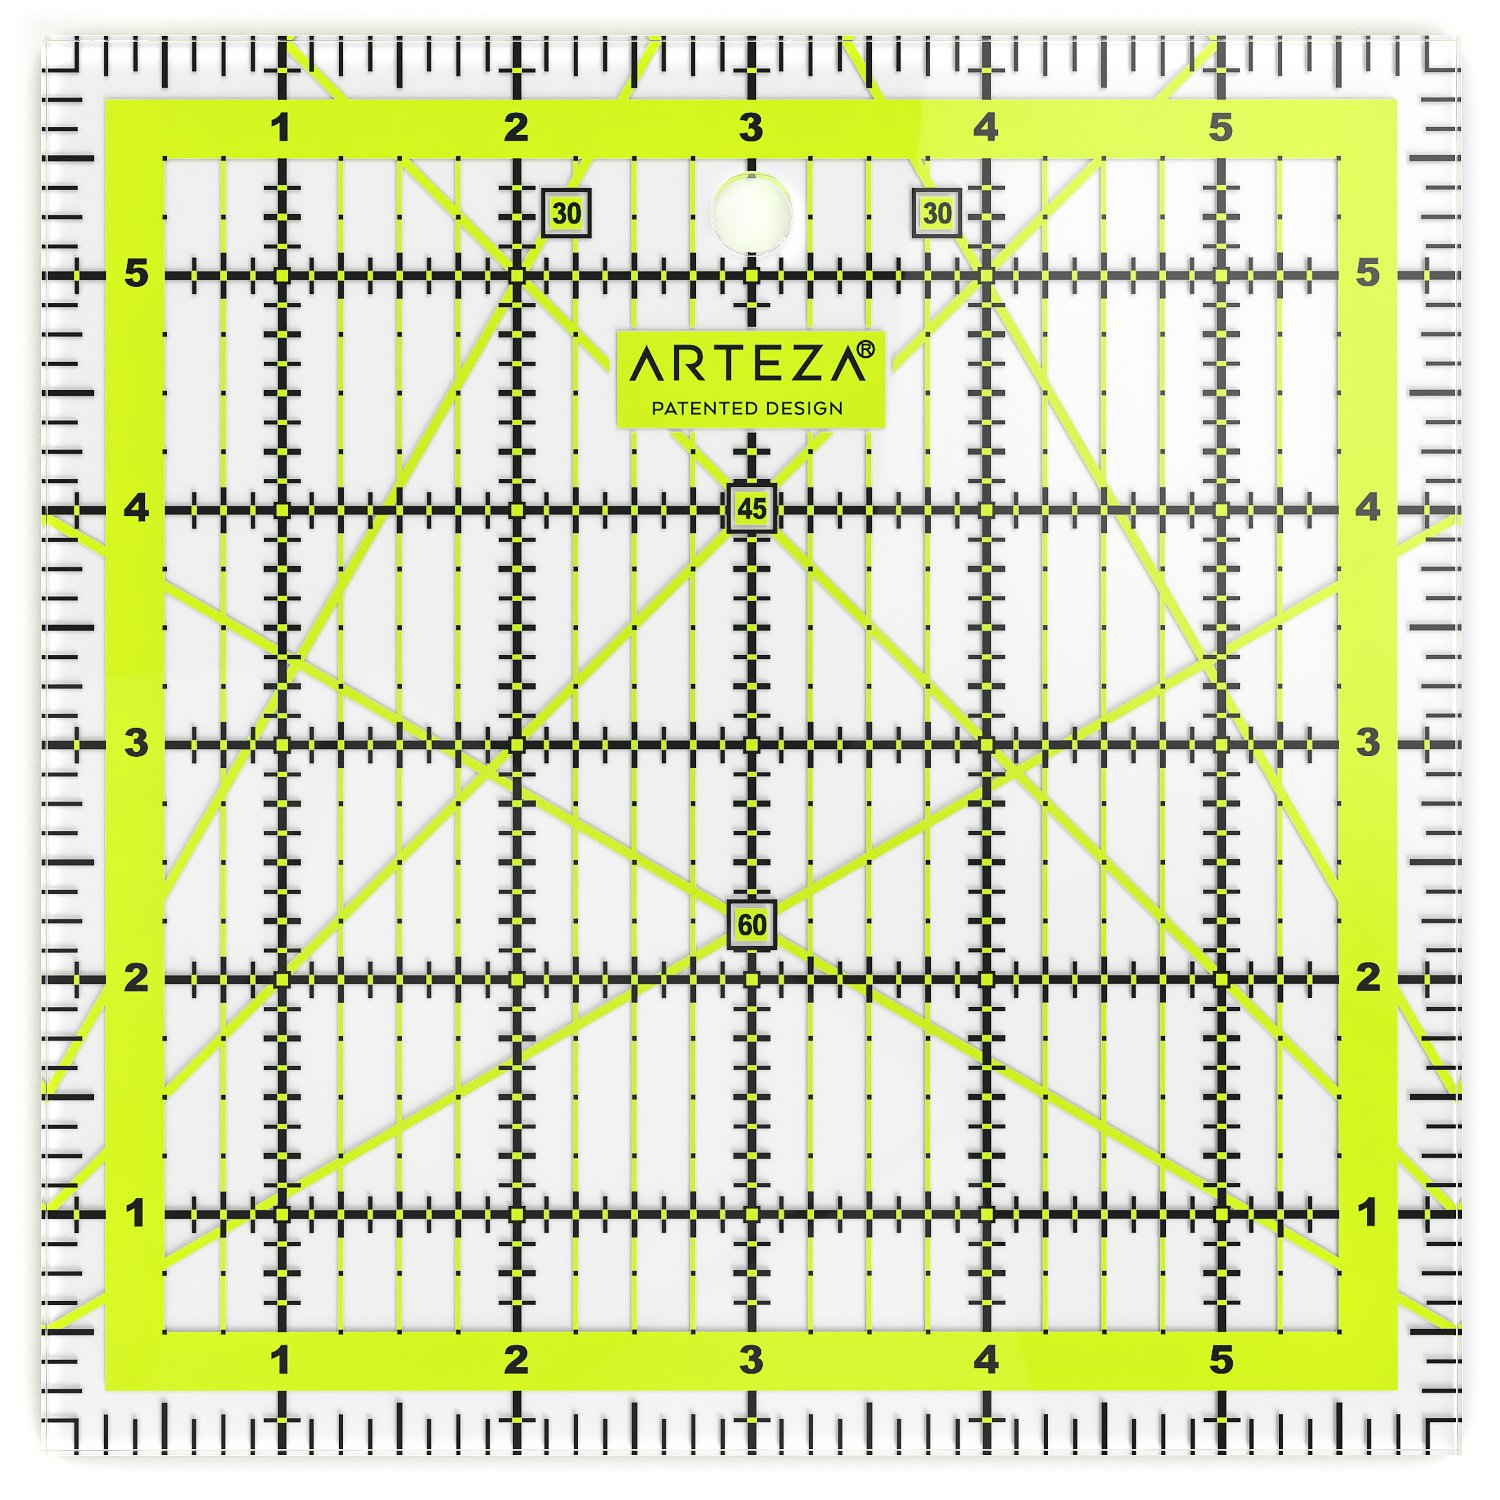 ARTEZA Quilting Ruler, Laser Cut Acrylic Quilters' Ruler with Patented Double Colored Grid Lines for Easy Precision Cutting, 6 Wide x 6 Long for Quilting, Sewing & Crafts, Black & Lime Green ARTZ-8128